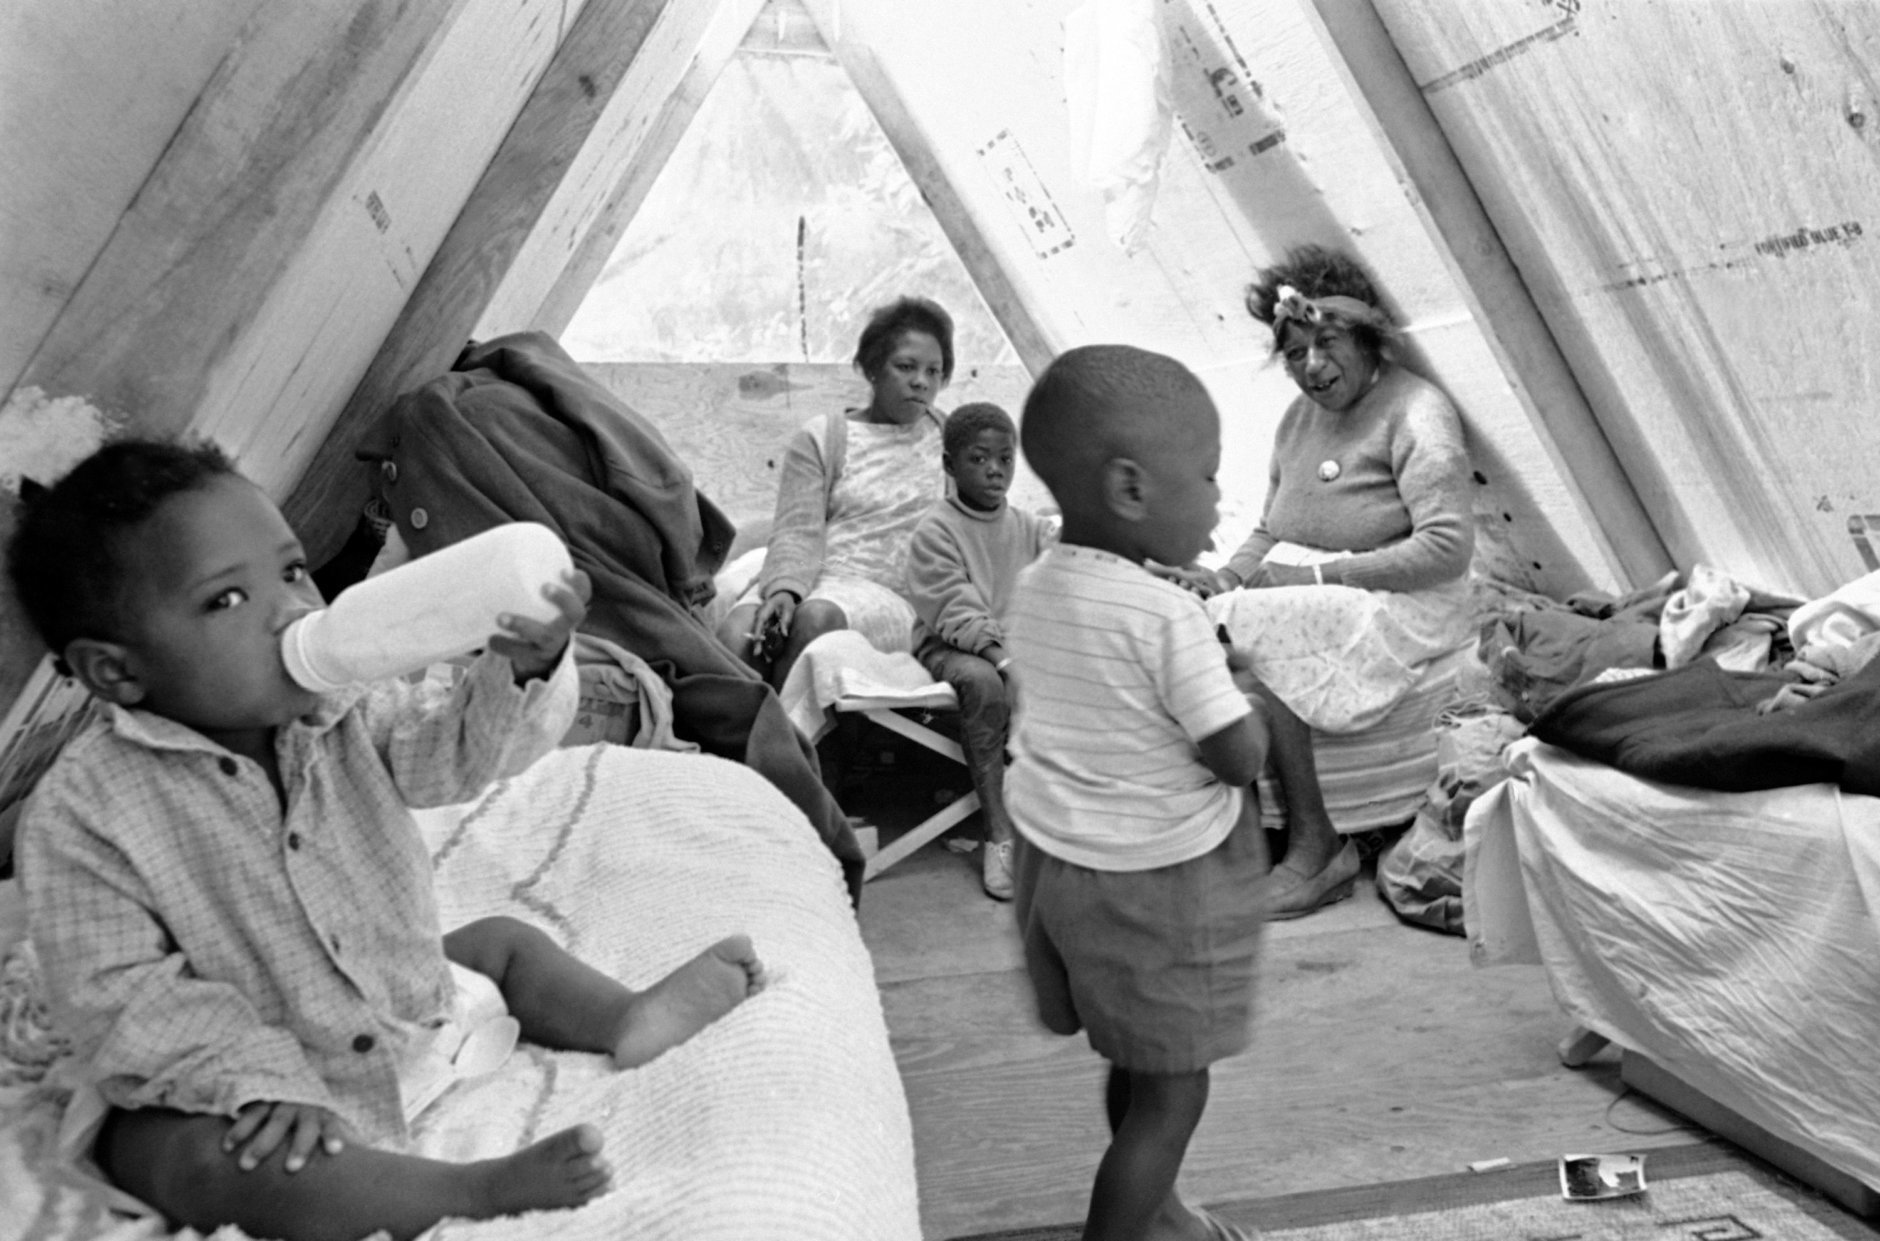 These Mississippians, including one-year-old Debbie Shirley with her nursing bottles made themselves at home in Resurrection City, Washington, May 22, 1968. In foreground is Michael Lee, 3. In background, from left, are: Francis Nunn of Crenshaw, Miss., Jerry Davis, 7, and Edith Maydukes of Marks, Miss. (AP Photo/Charles Tasnadi)